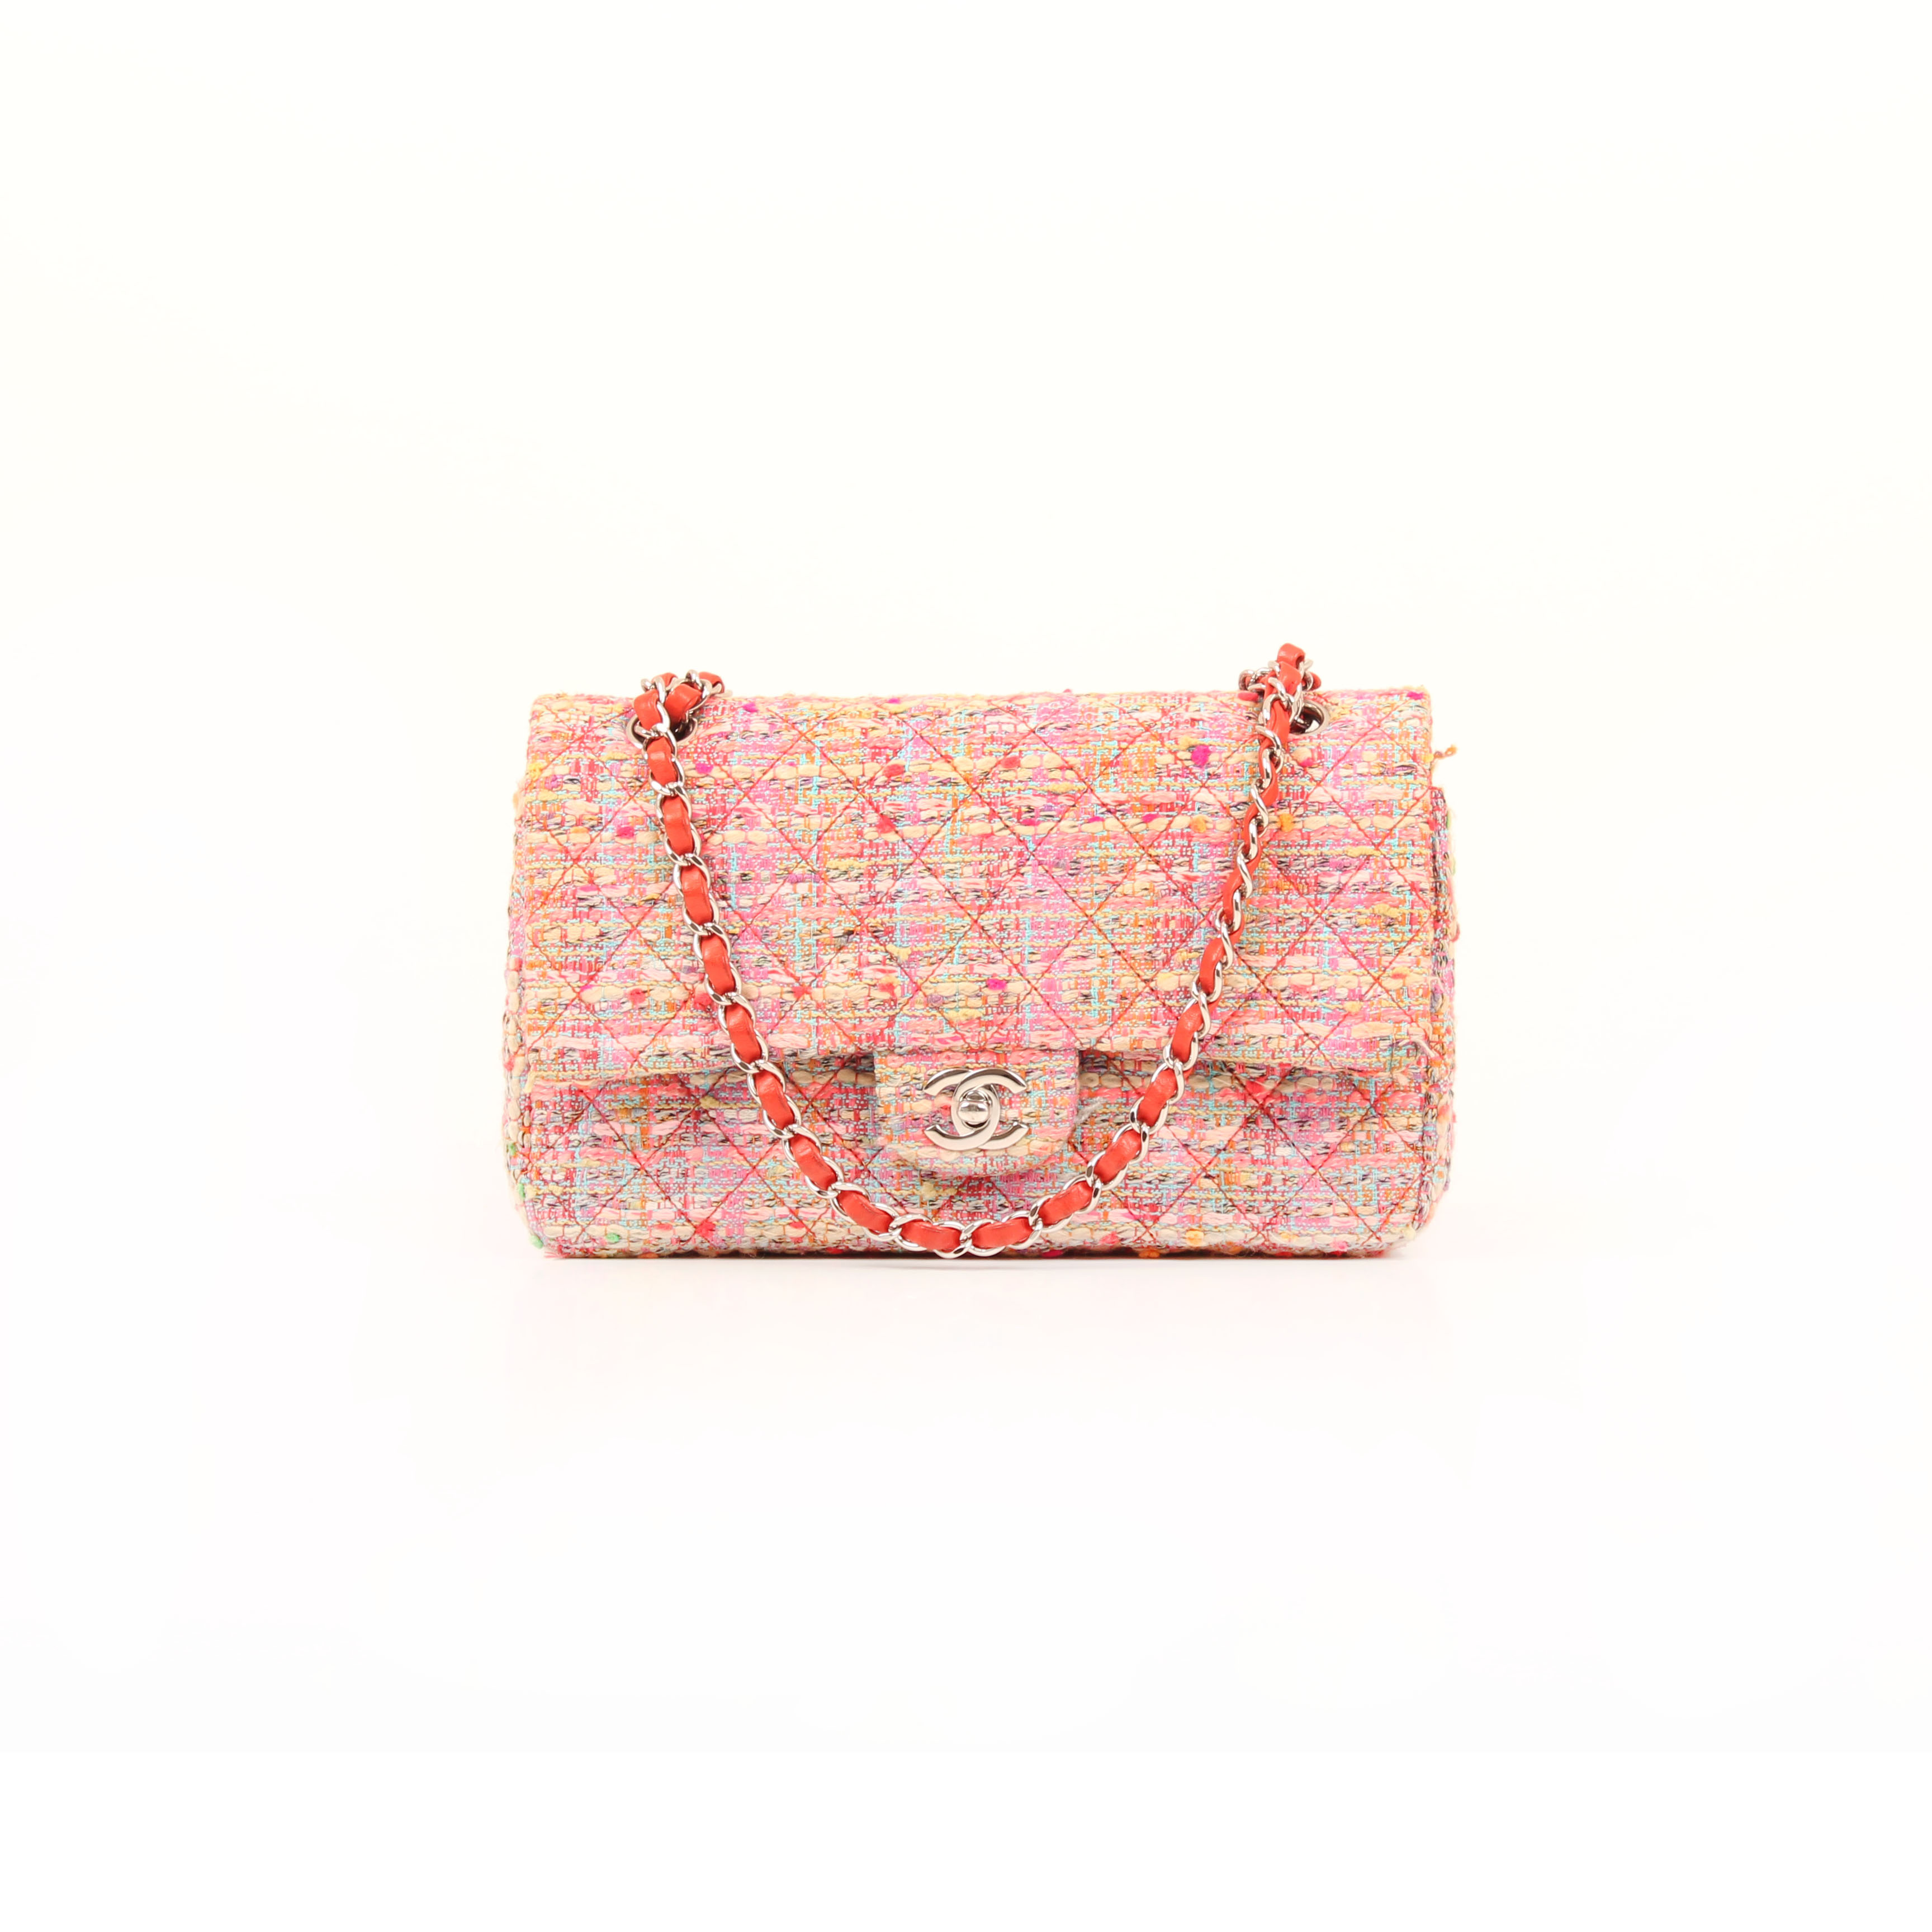 Front image from chanel timeless tweed pink multicolor neon double flap bag